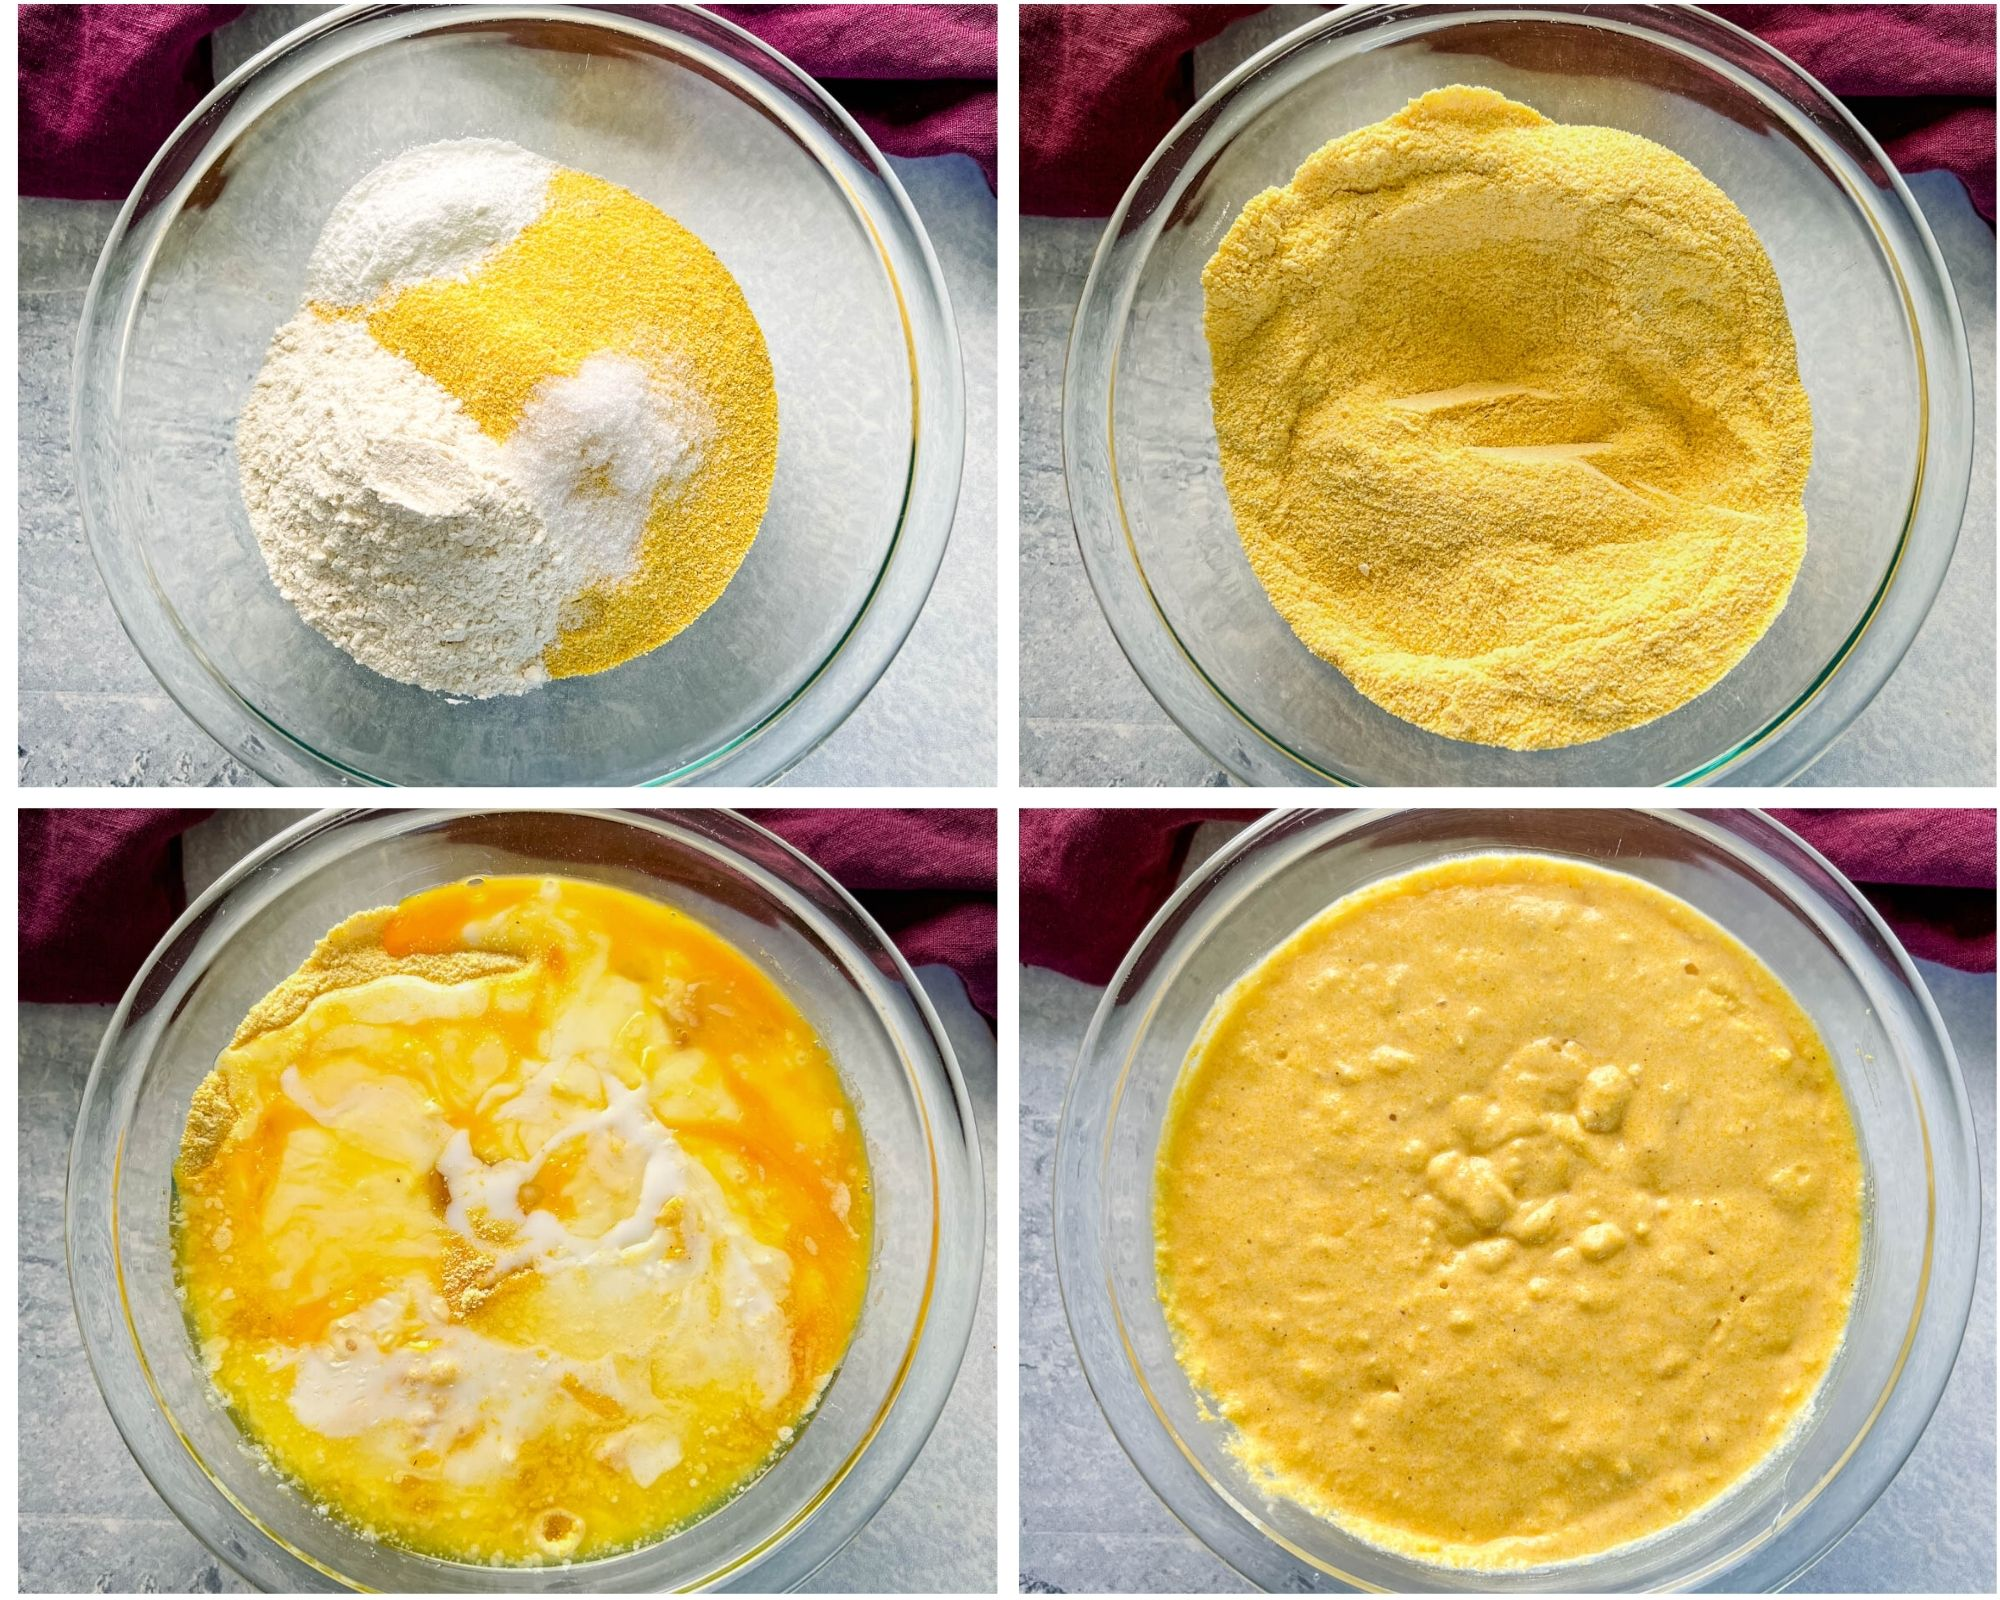 collage photos of a greased wedge pan skillet, cornmeal in a mixing bowl, and cornbread batter in a mixing bowl